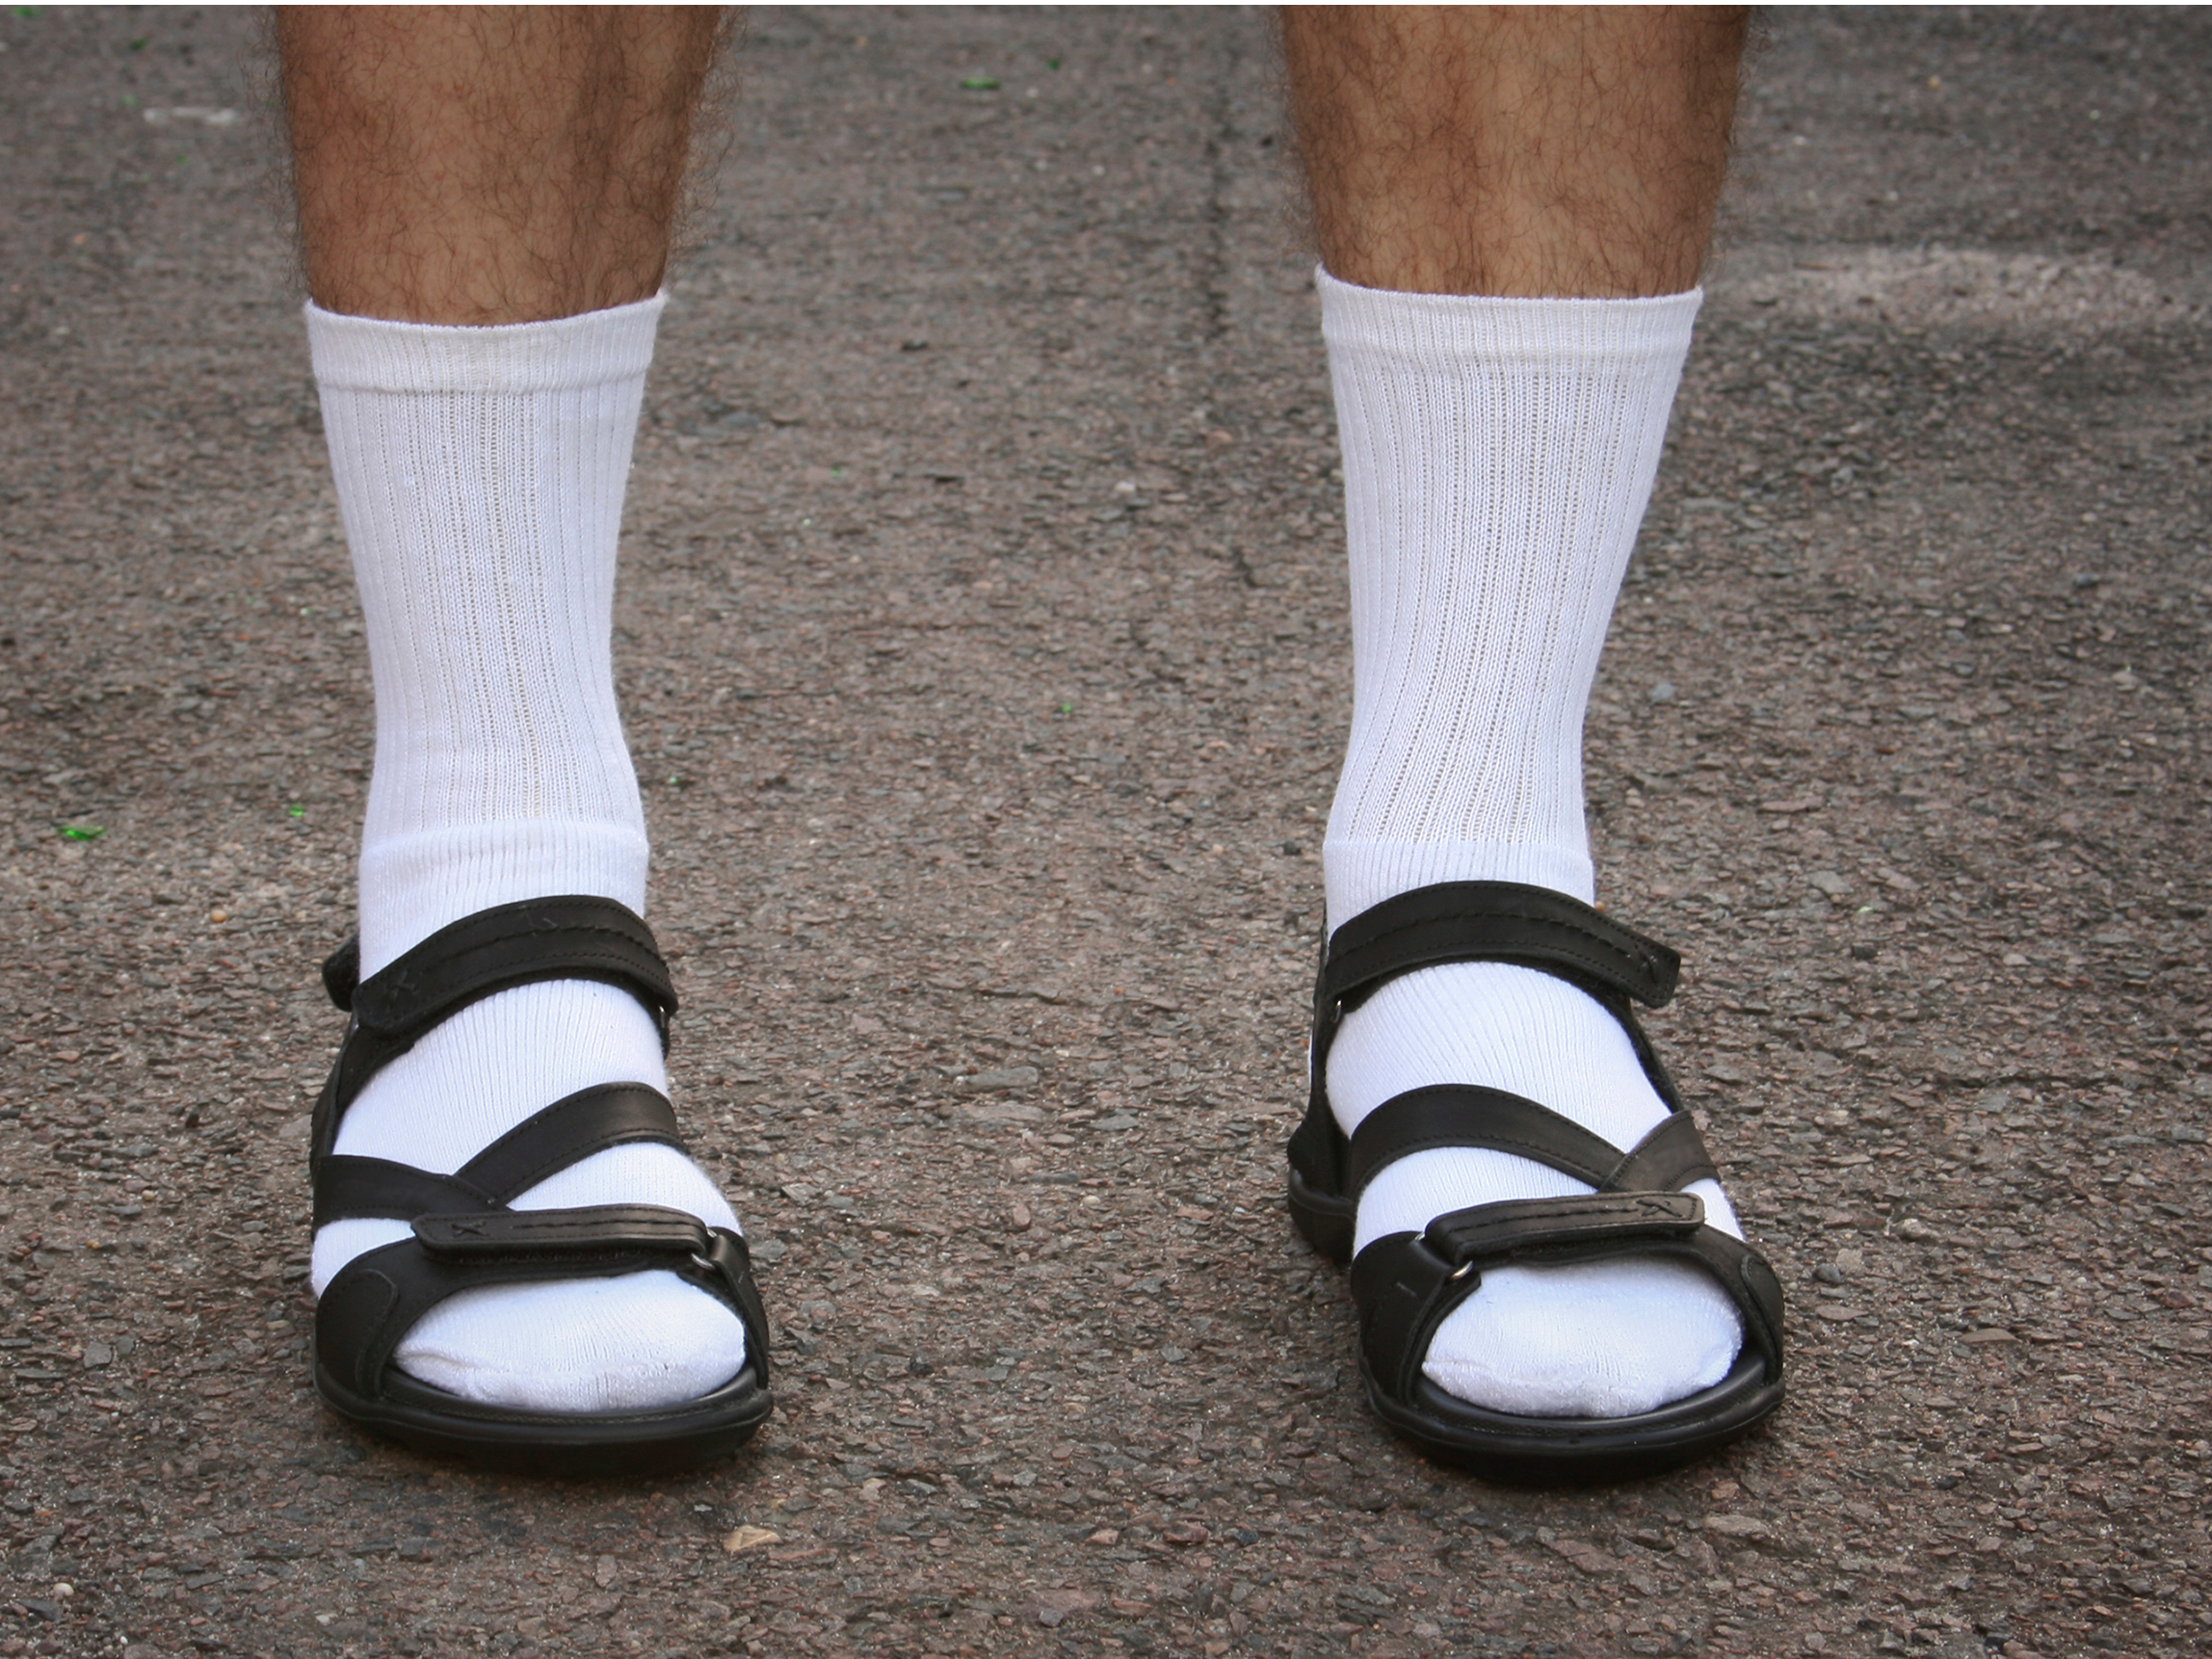 https://static.independent.co.uk/s3fs-public/thumbnails/image/2016/07/18/13/socks-with-sandals.jpg